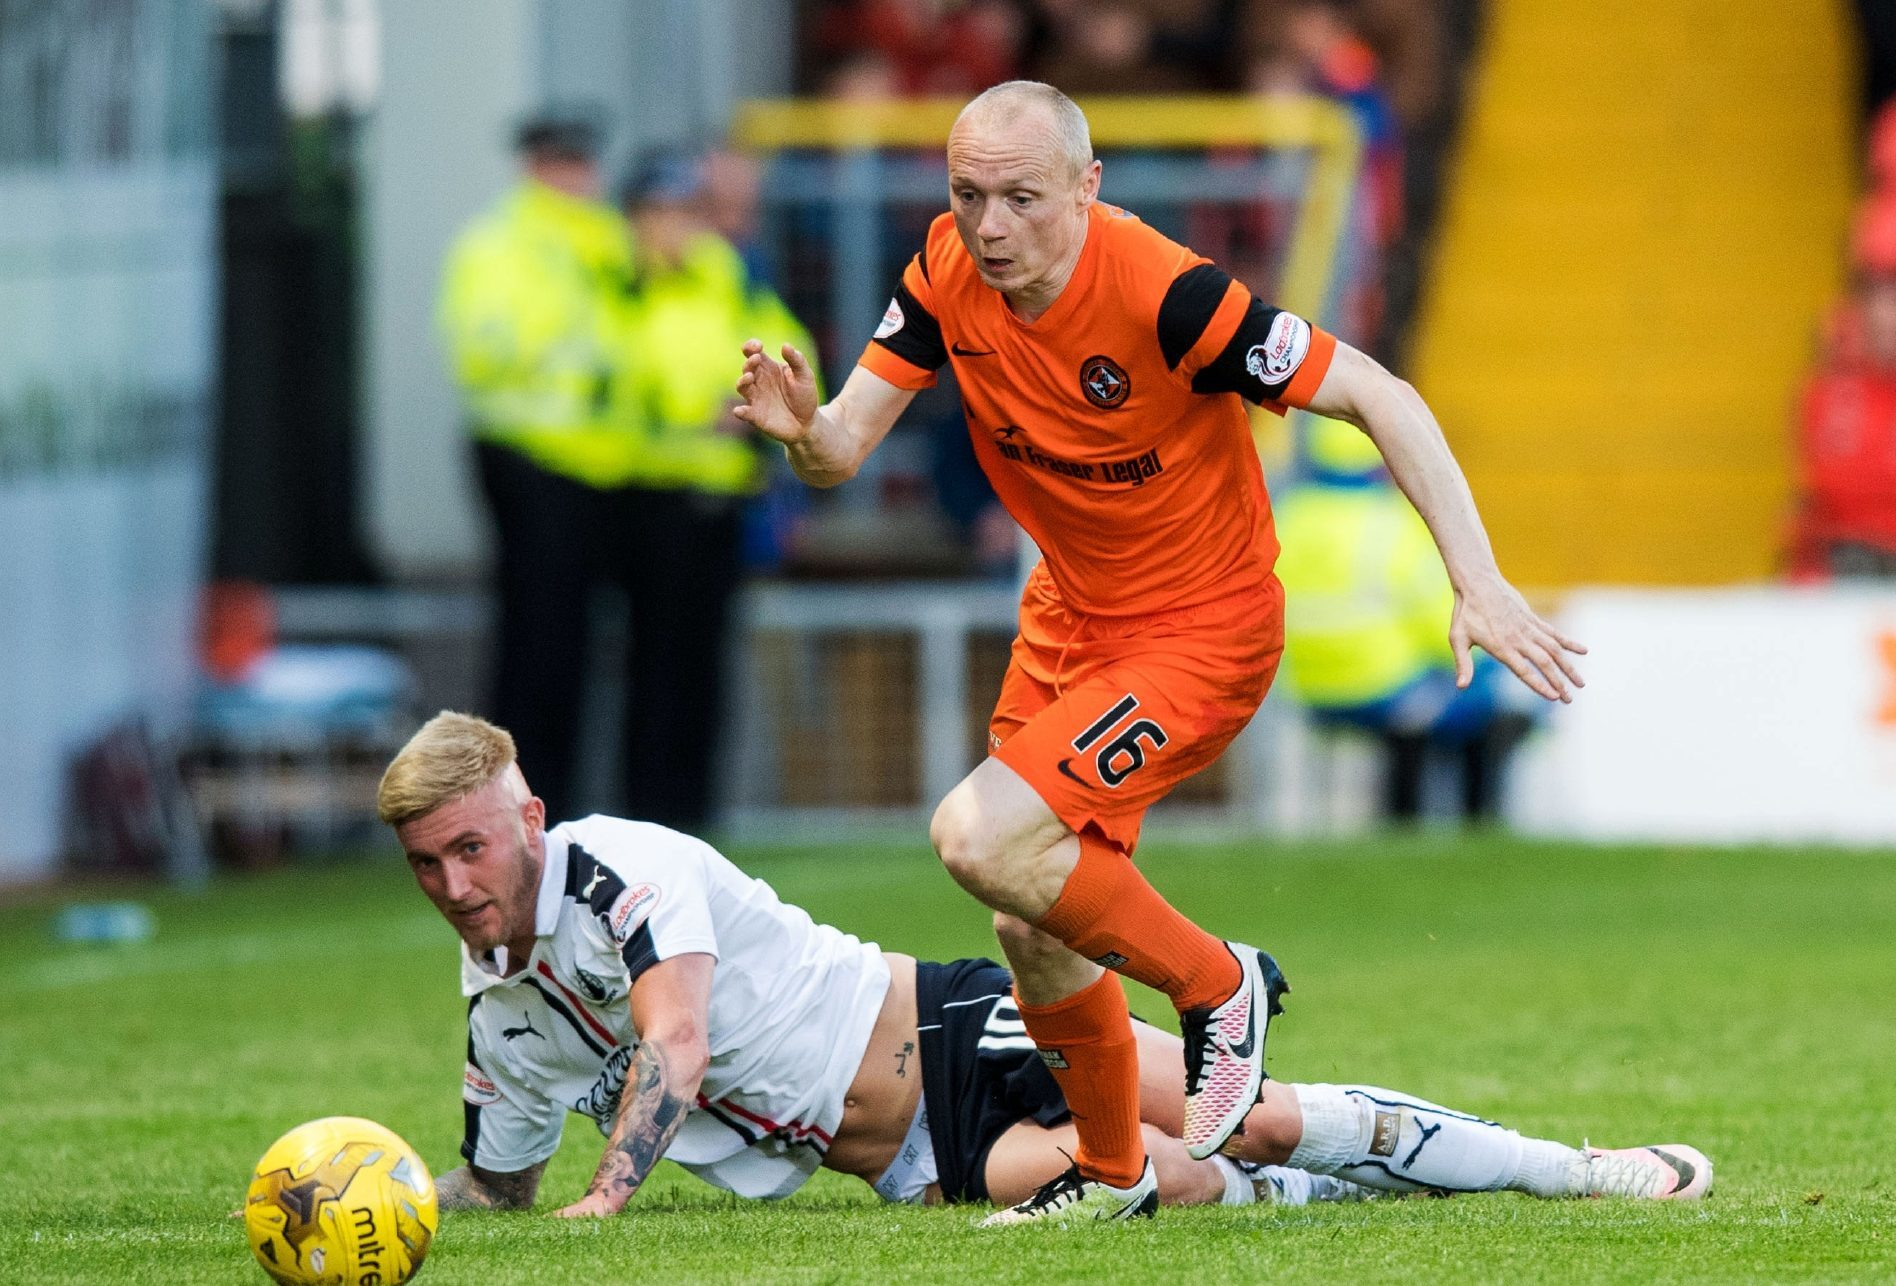 Dundee United's Willo Flood in action with Falkirk's Craig Sibbald.